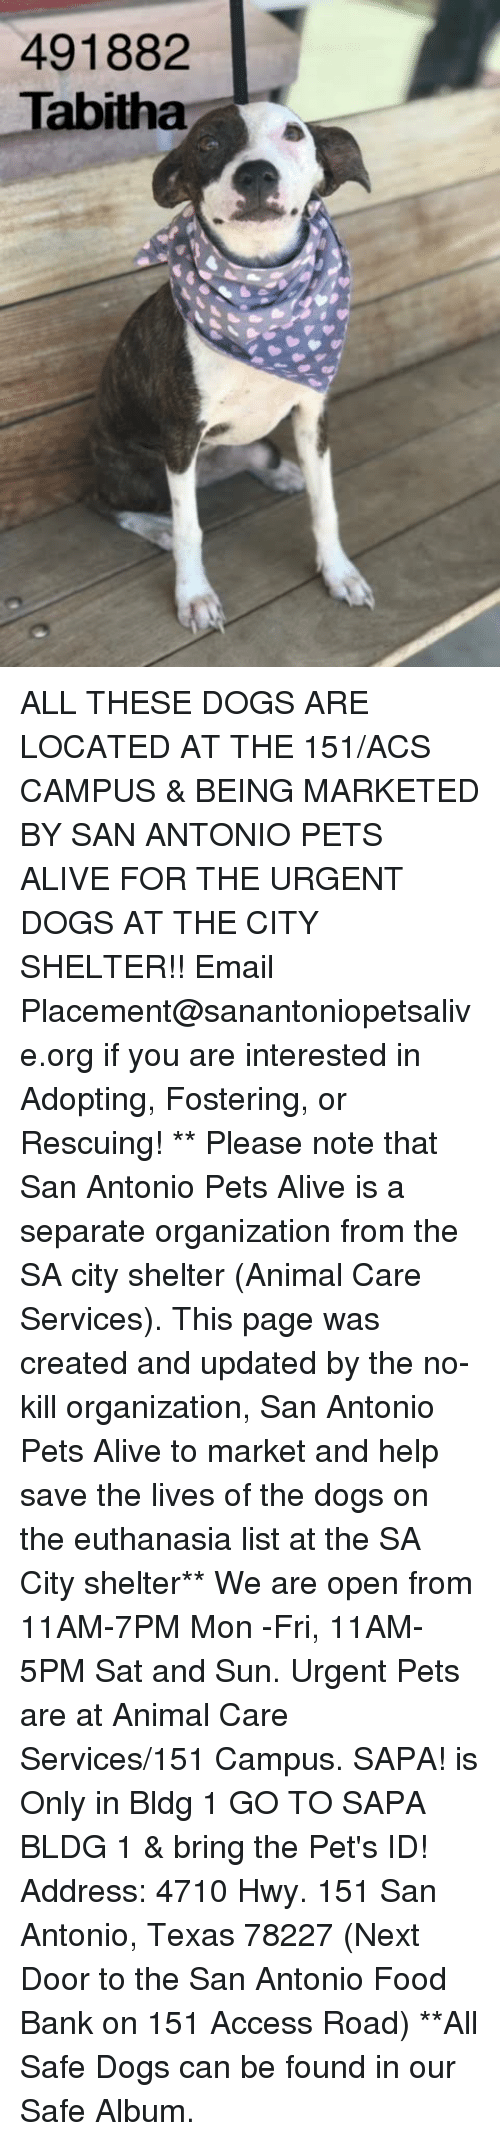 Alive, Dogs, and Food: 491882  Tabitha ALL THESE DOGS ARE LOCATED AT THE 151/ACS CAMPUS & BEING MARKETED BY SAN ANTONIO PETS ALIVE FOR THE URGENT DOGS AT THE CITY SHELTER!!  Email Placement@sanantoniopetsalive.org if you are interested in Adopting, Fostering, or Rescuing!                                                                                                                                                                                                                                                                                                                                                             ** Please note that San Antonio Pets Alive is a separate organization from the SA city shelter (Animal Care Services). This page was created and updated by the no-kill organization, San Antonio Pets Alive to market and help save the lives of the dogs on the euthanasia list at the SA City shelter**  We are open from 11AM-7PM Mon -Fri, 11AM-5PM Sat and Sun. Urgent Pets are at Animal Care Services/151 Campus. SAPA! is Only in Bldg 1 GO TO SAPA BLDG 1 & bring the Pet's ID! Address: 4710 Hwy. 151 San Antonio, Texas 78227 (Next Door to the San Antonio Food Bank on 151 Access Road) **All Safe Dogs can be found in our Safe Album.